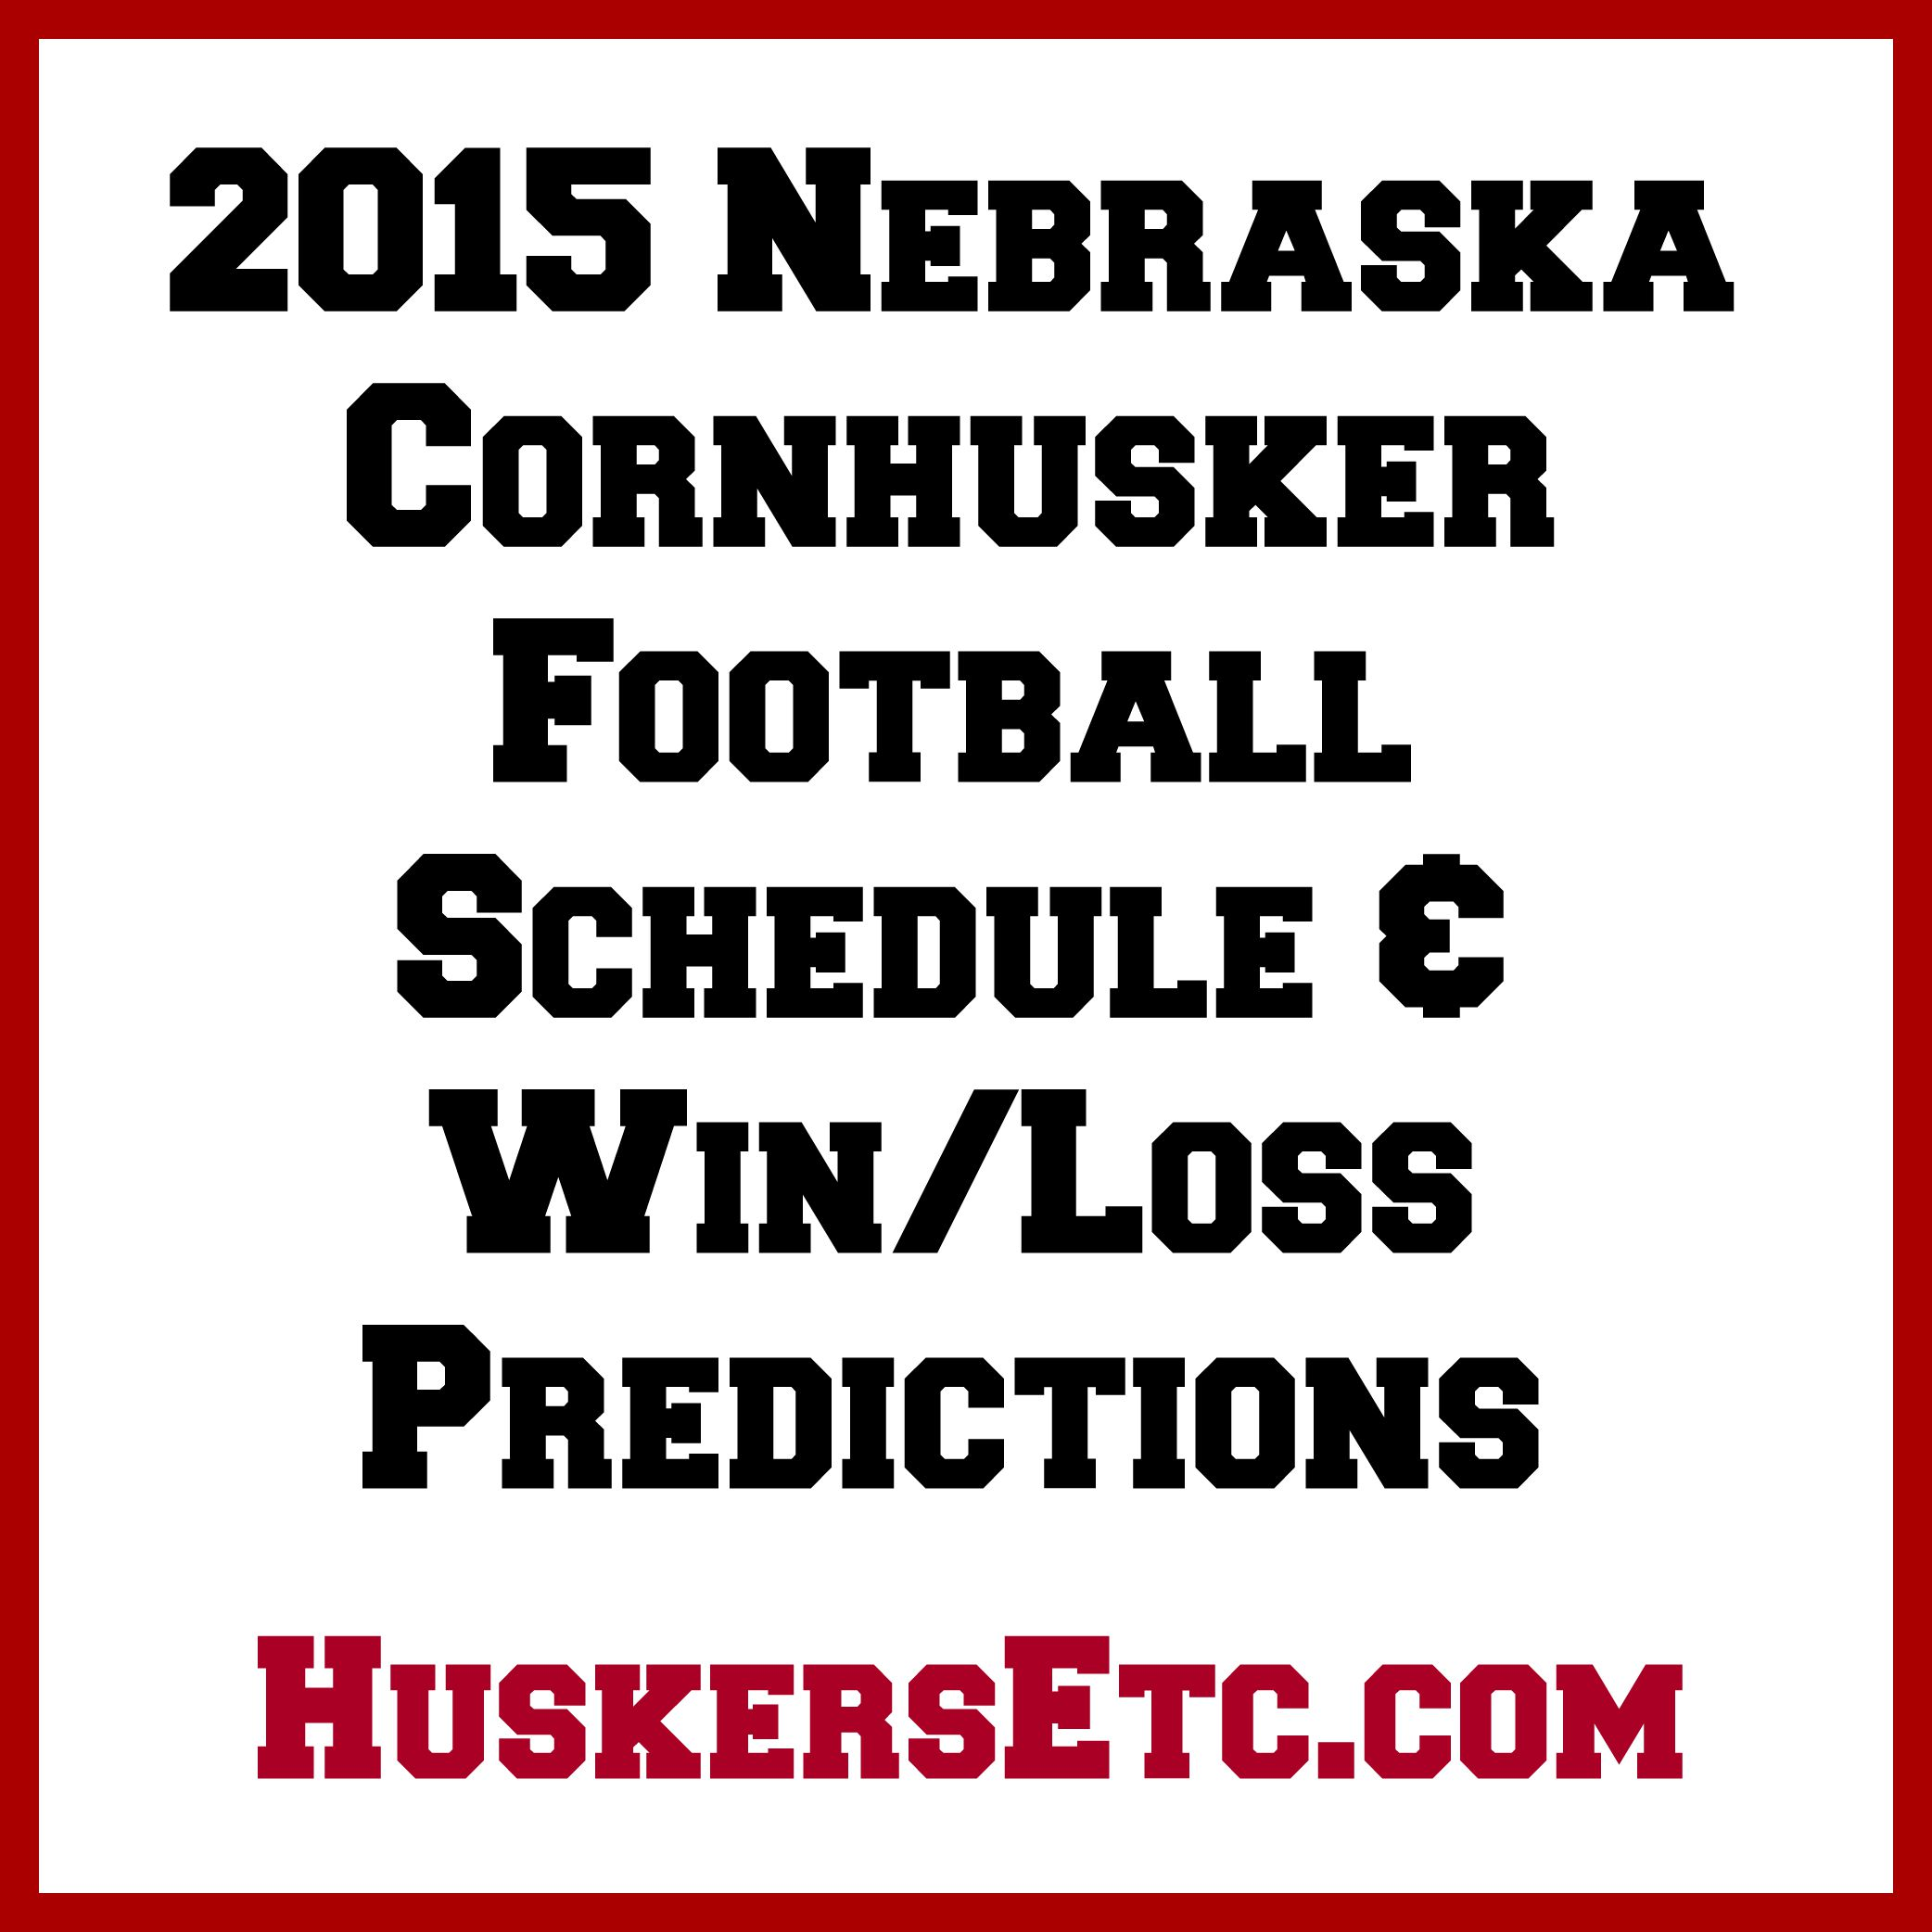 2015 Nebraska Husker Football Schedule & Win/Loss Predictions